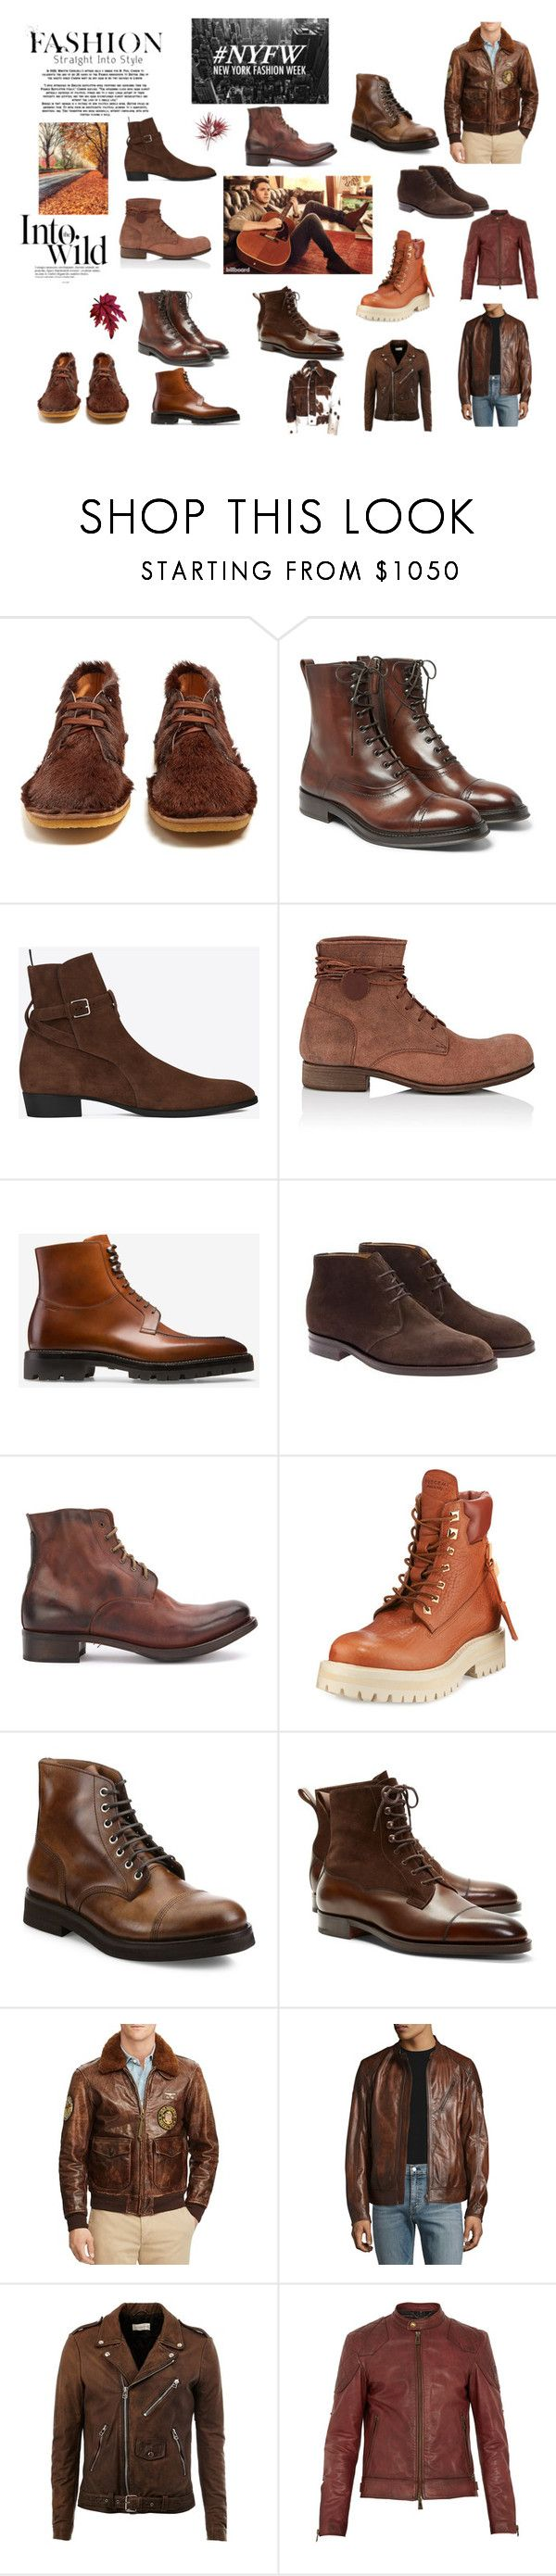 """Unbenannt #83"" by sotirios-theocharis ❤ liked on Polyvore featuring Prada, Berluti, Yves Saint Laurent, Carpe Diem, Bally, Edward Green, Cherevichkiotvichki, BUSCEMI, Brunello Cucinelli and Brooks Brothers"